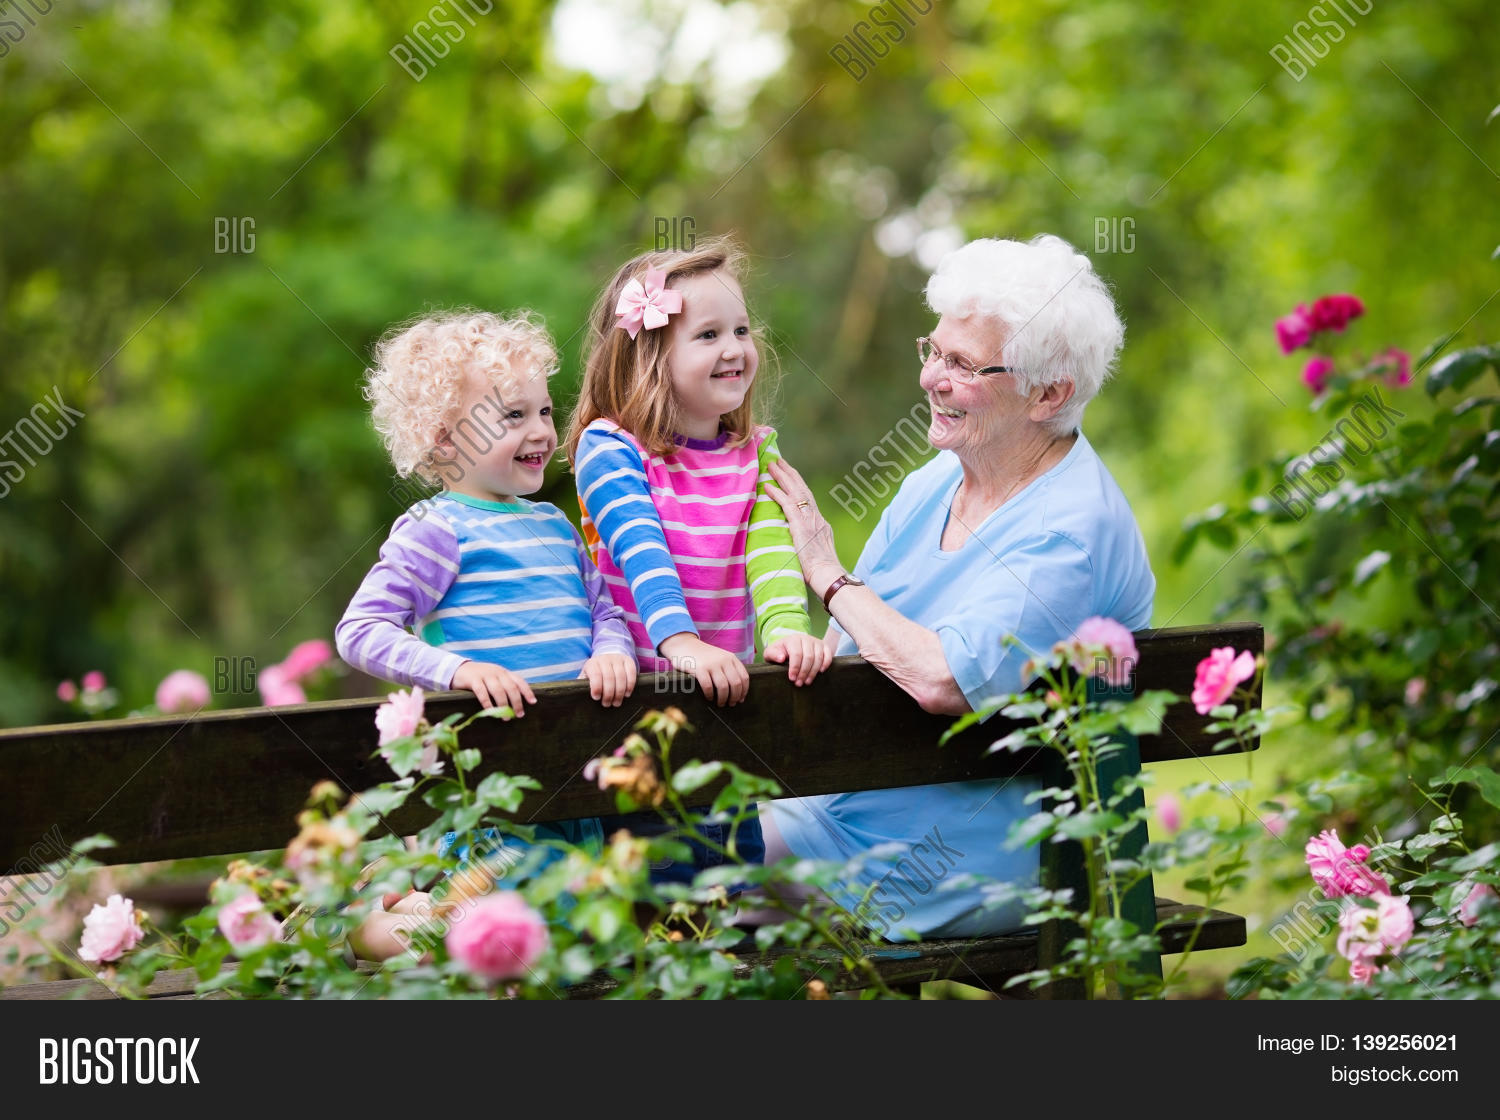 grandmother,garden,family,child,happy,girl,people,kids,grandparents,summer,woman,granddaughter,toddler,senior,little,park,fun,together,party,old,outdoor,elderly,mother,young,boy,son,twins,grandson,rose,flowers,bush,sit,bench,relax,grandchild,great,spring,autumn,fall,gardener,day,baby,gardening,love,grandma,playing,help,retired,retirement